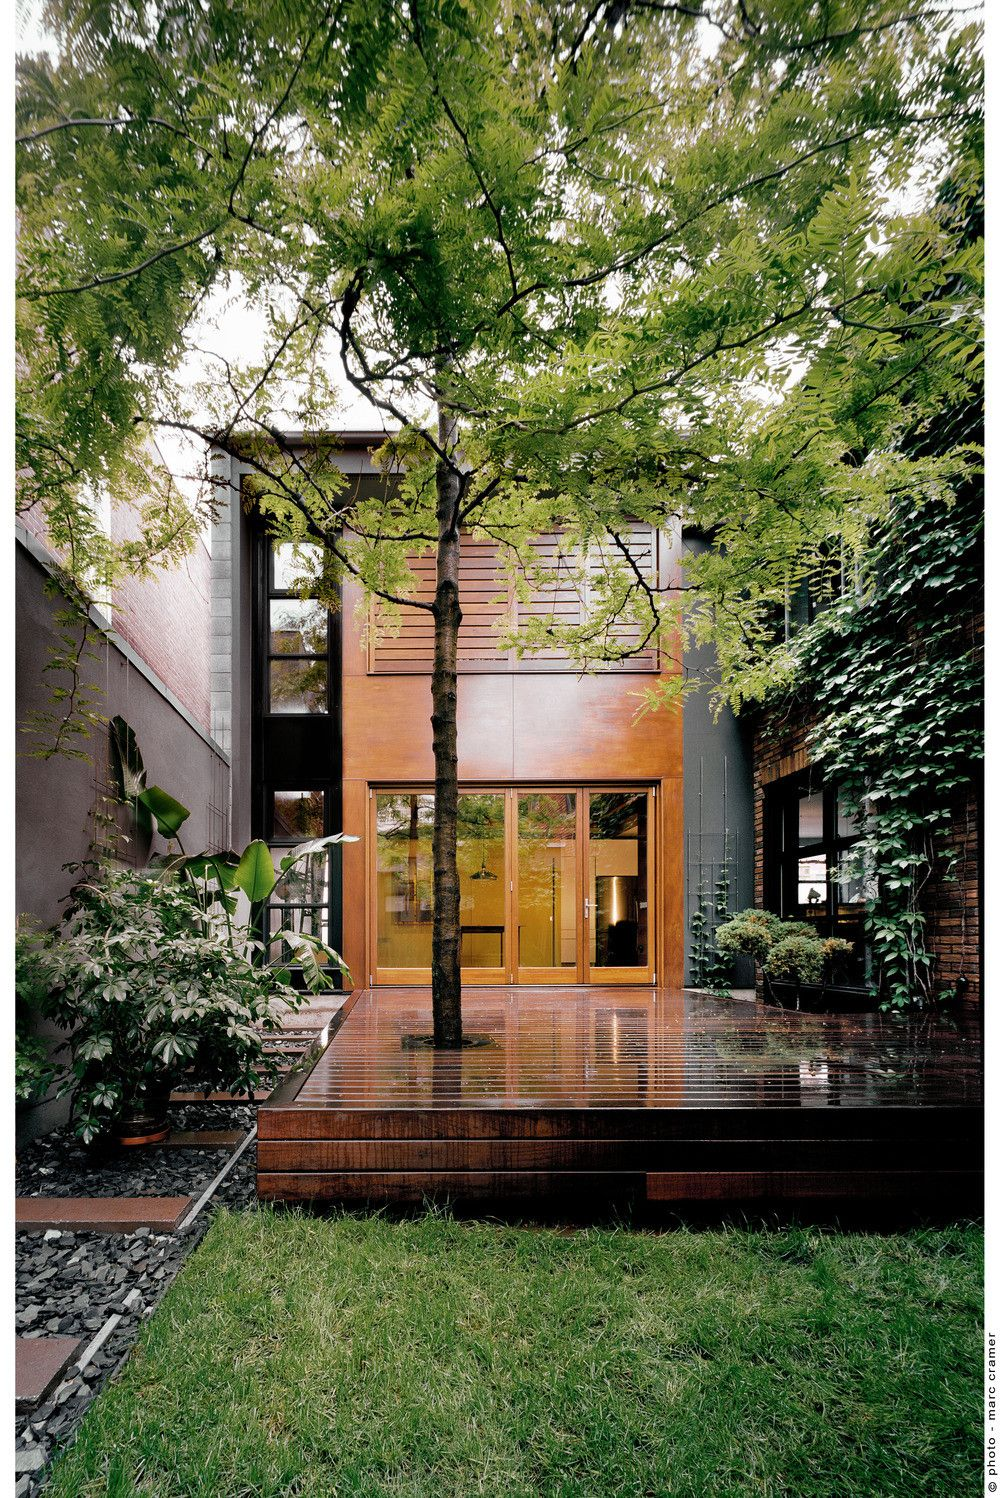 marc cramer just cool pinterest house spaces and outdoor spaces